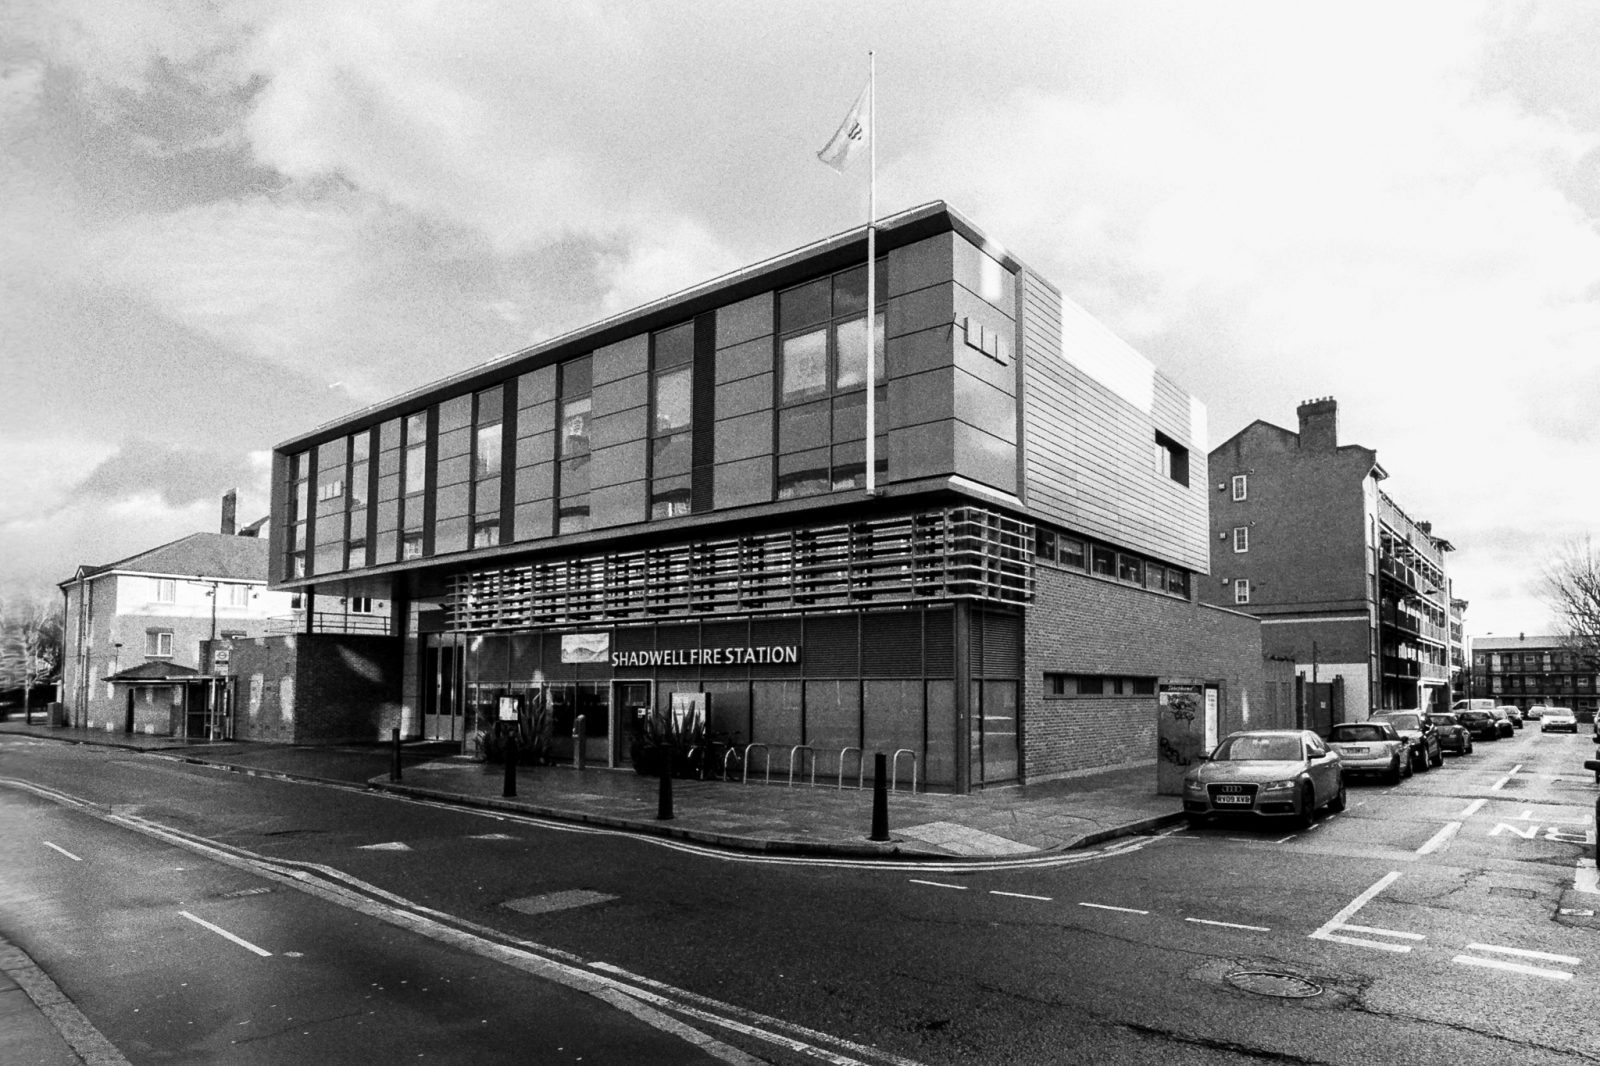 Shadwell Fire Station